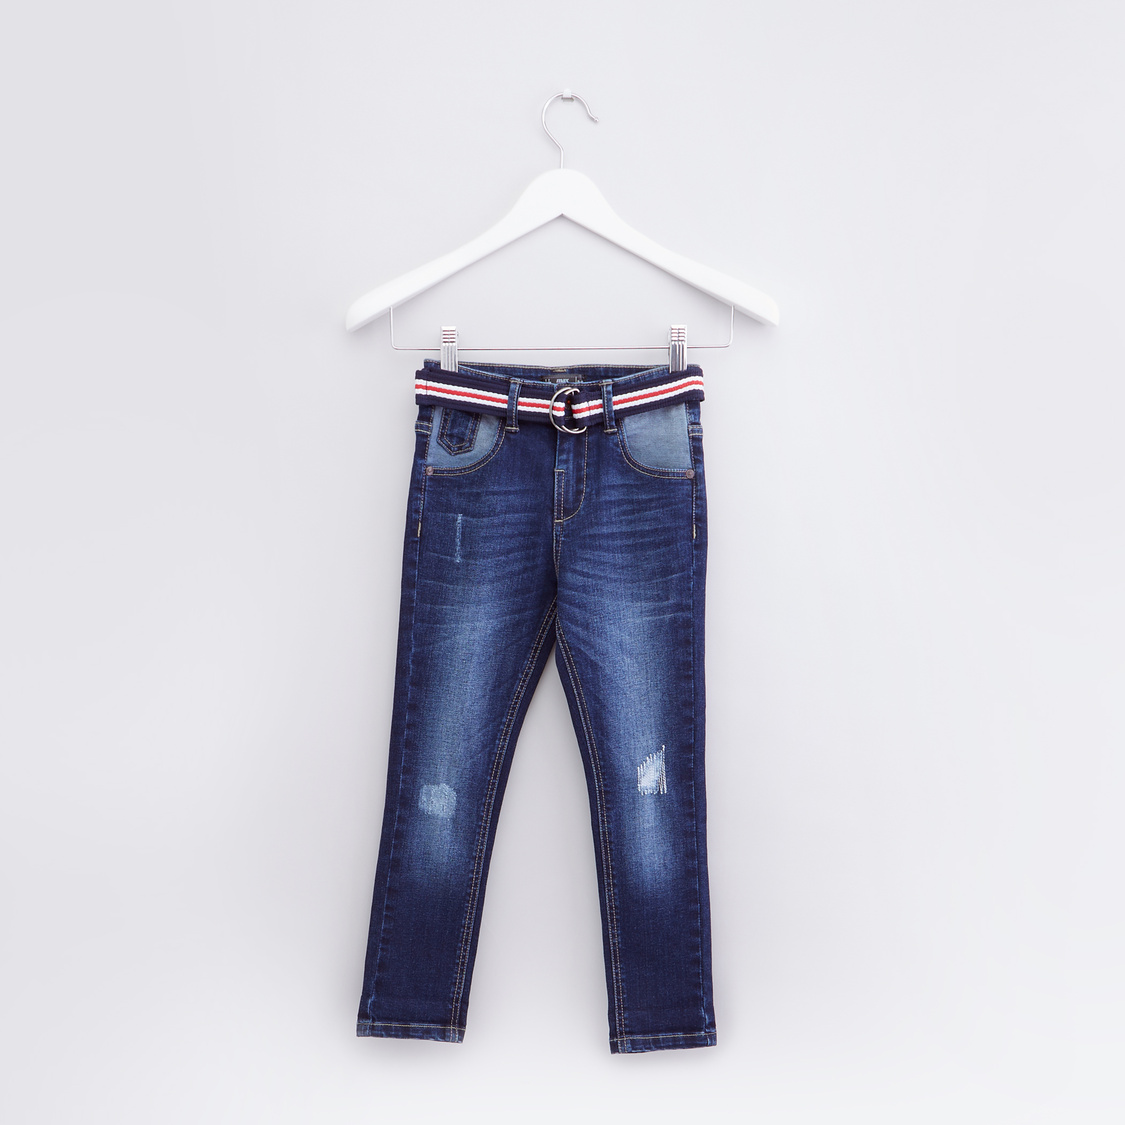 Distressed Jeans with Pocket Detail and Belt